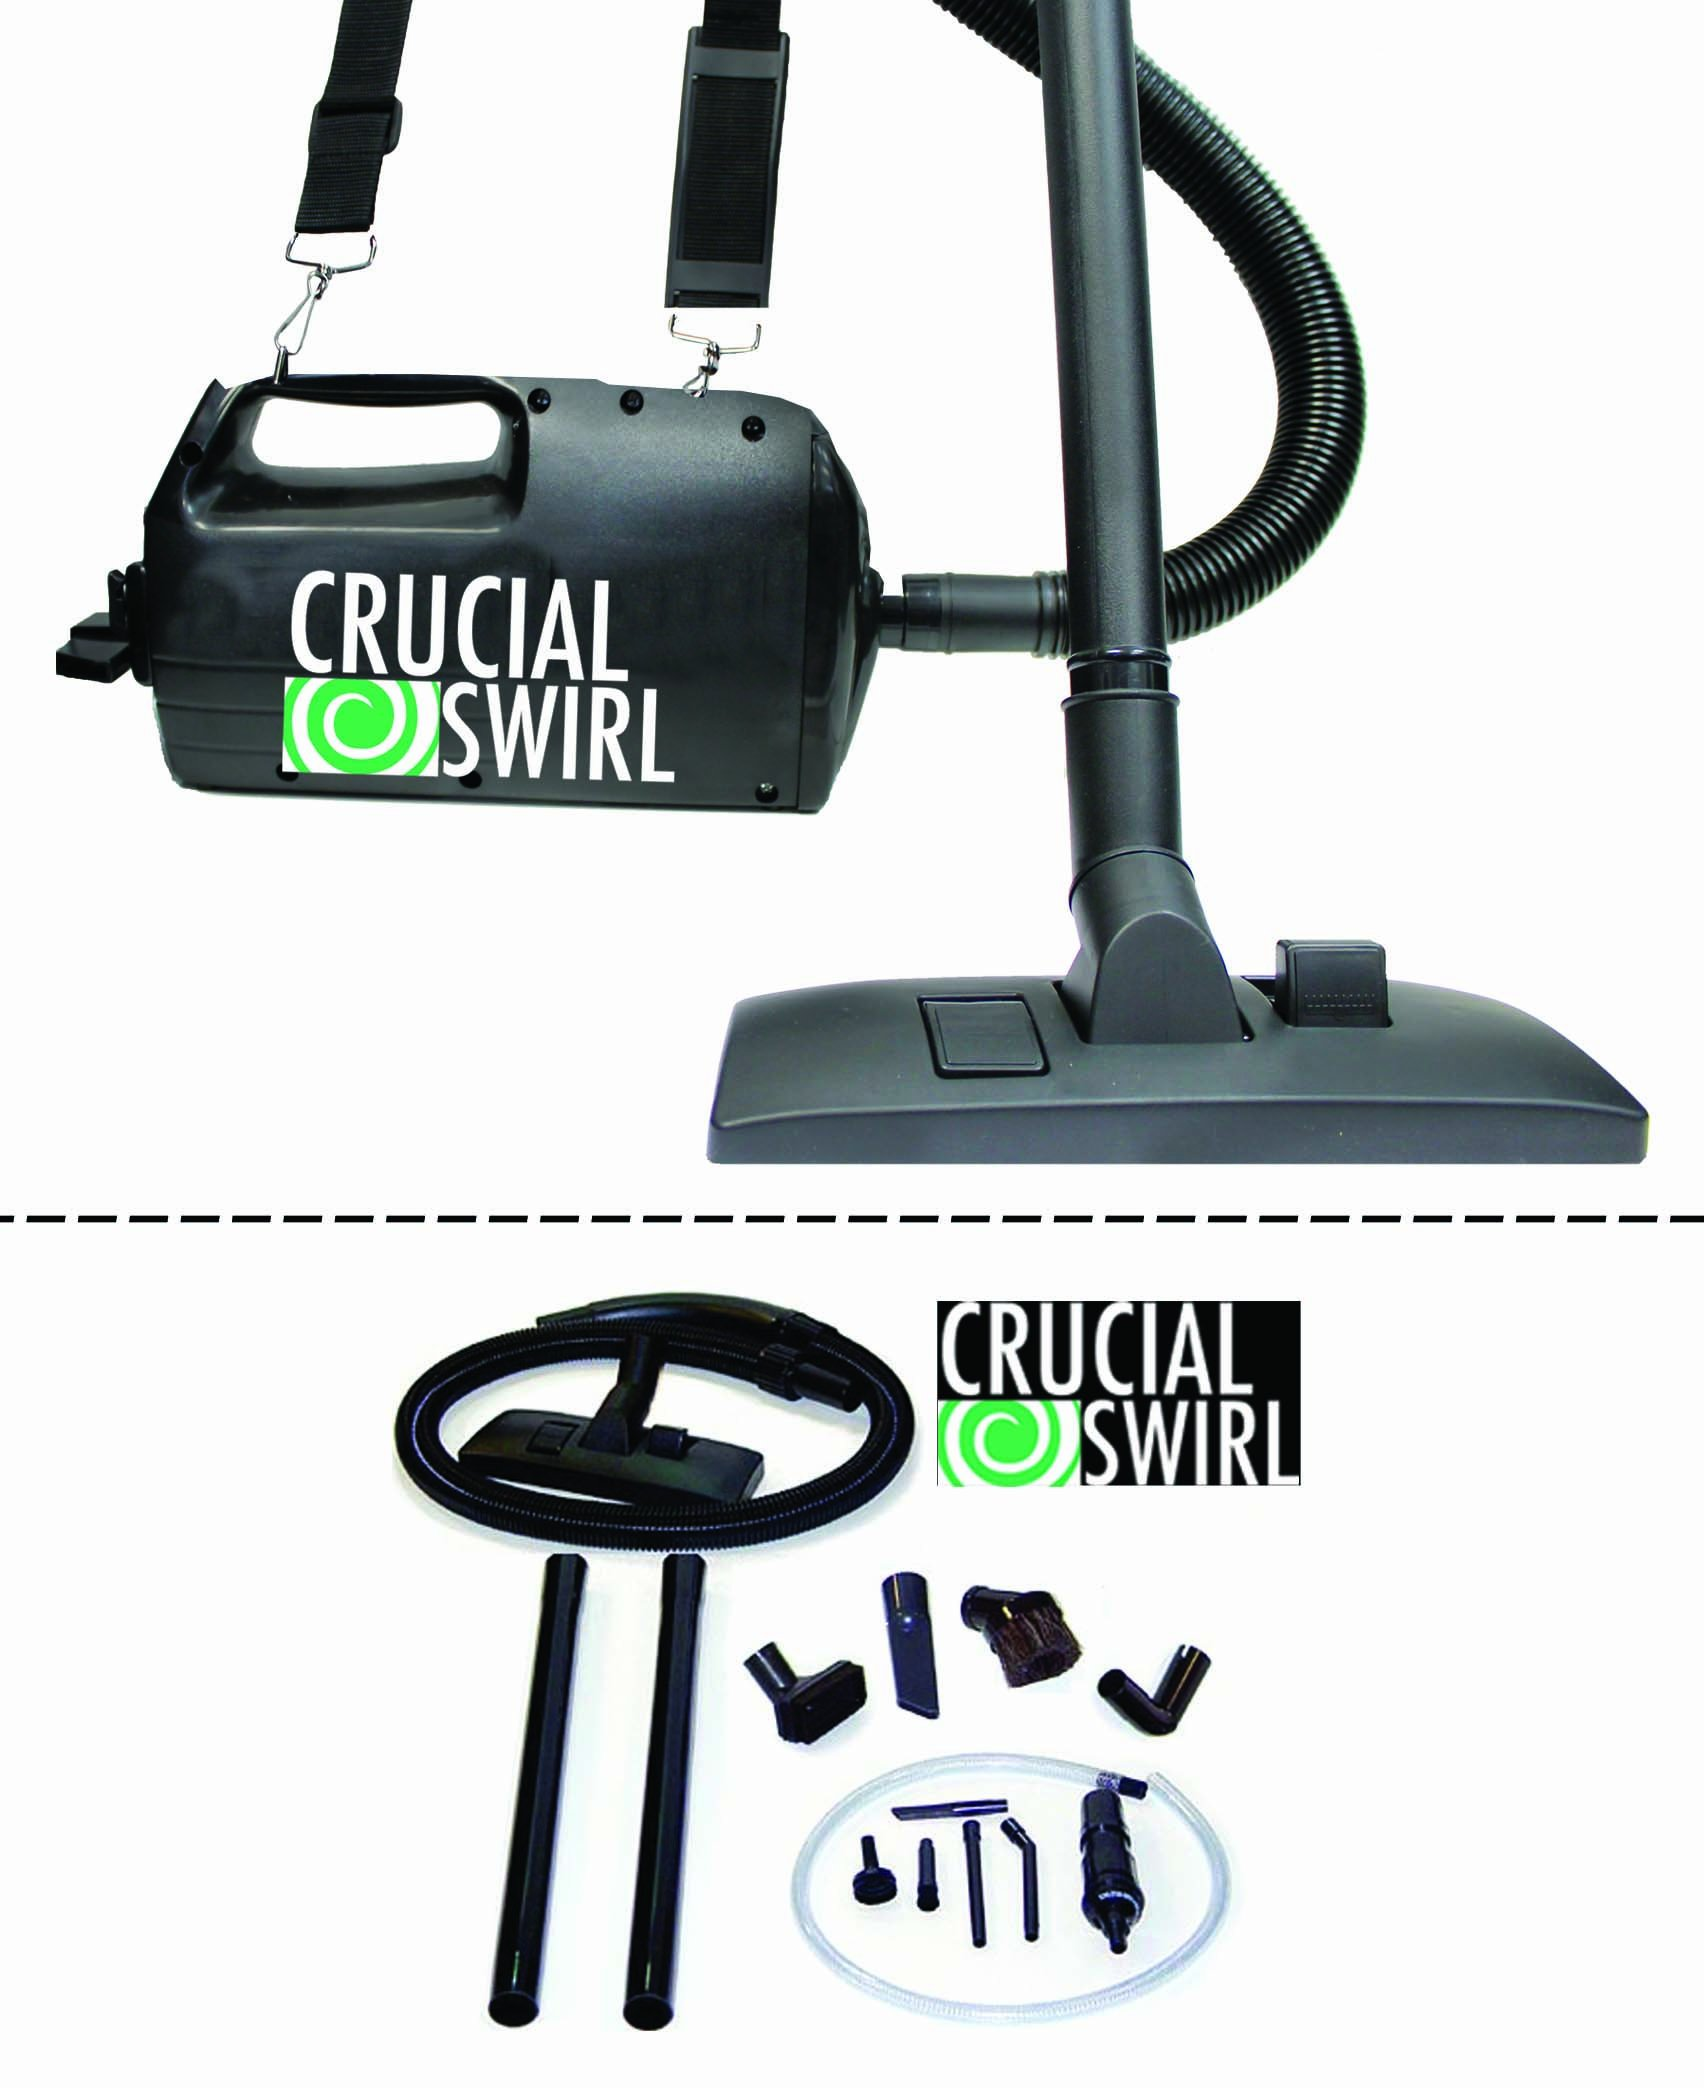 Crucial Swirl Powerful Handheld Portable Vacuum Cleaner, Includes Deluxe Cleaning Attachments & Micro Cleaning Attachment Set, Only 4.5lbs & has Blower Function Too, Perfect for Car detailing, Designed and Engineered by Crucial Vacuum - Corded